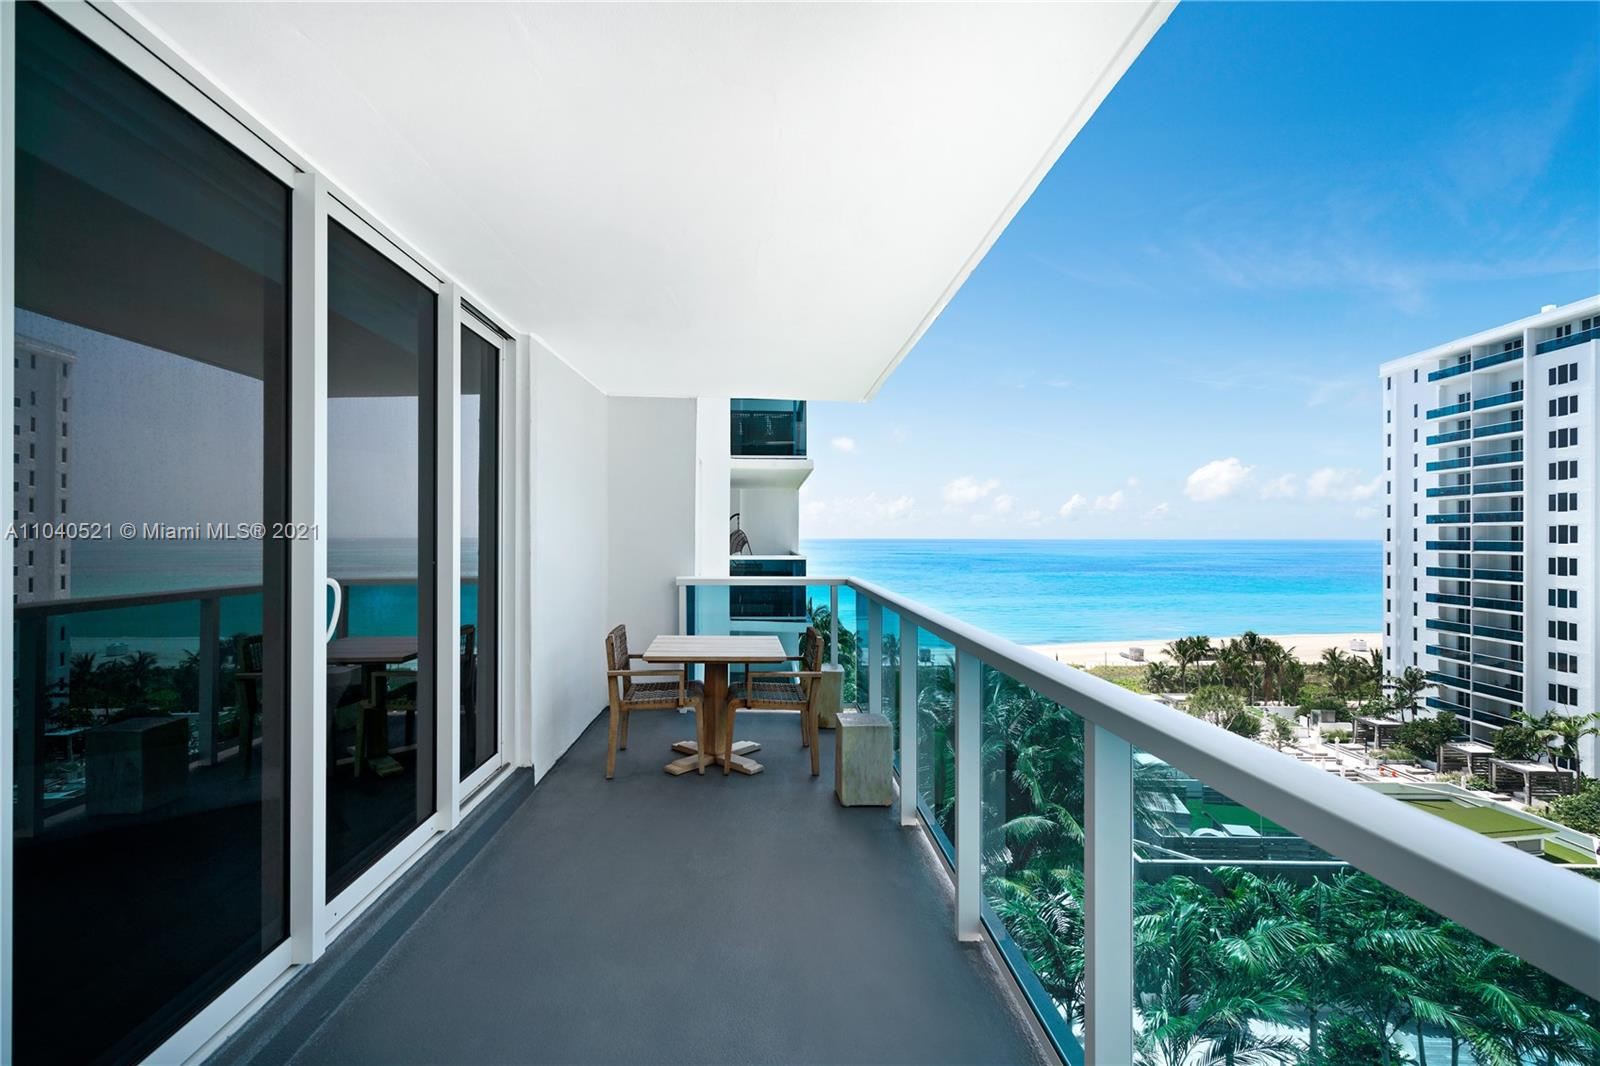 102  24th St #1004 For Sale A11040521, FL